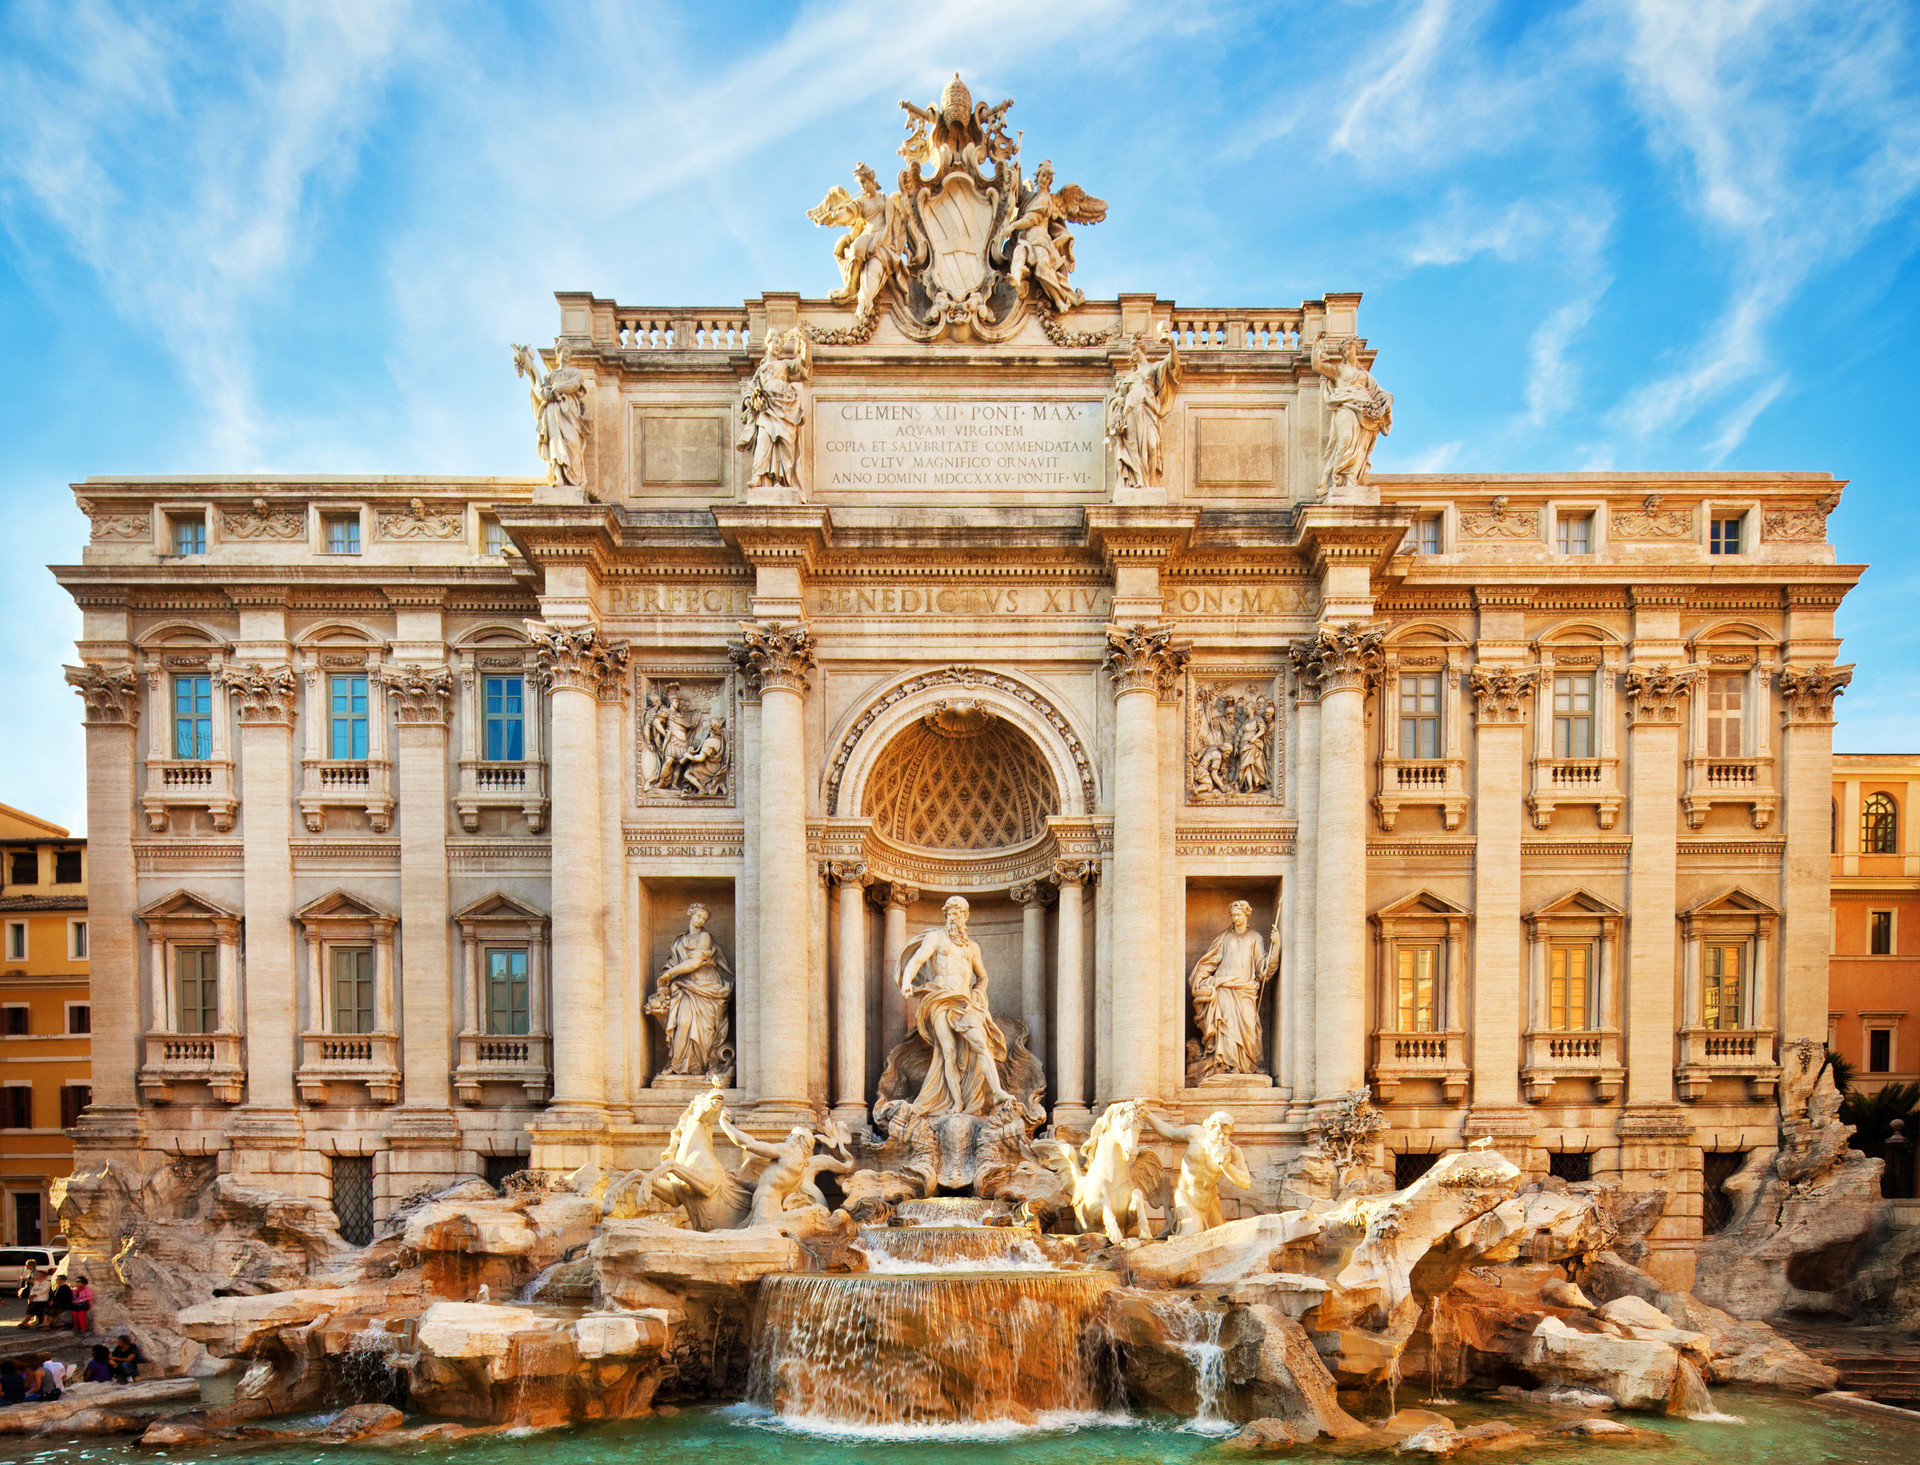 Arts + Culture Landmarks Travel Tips Trip Ideas building sky outdoor landmark fountain historic site ancient rome palace human settlement ancient history Architecture plaza water feature ancient roman architecture facade monument basilica stone